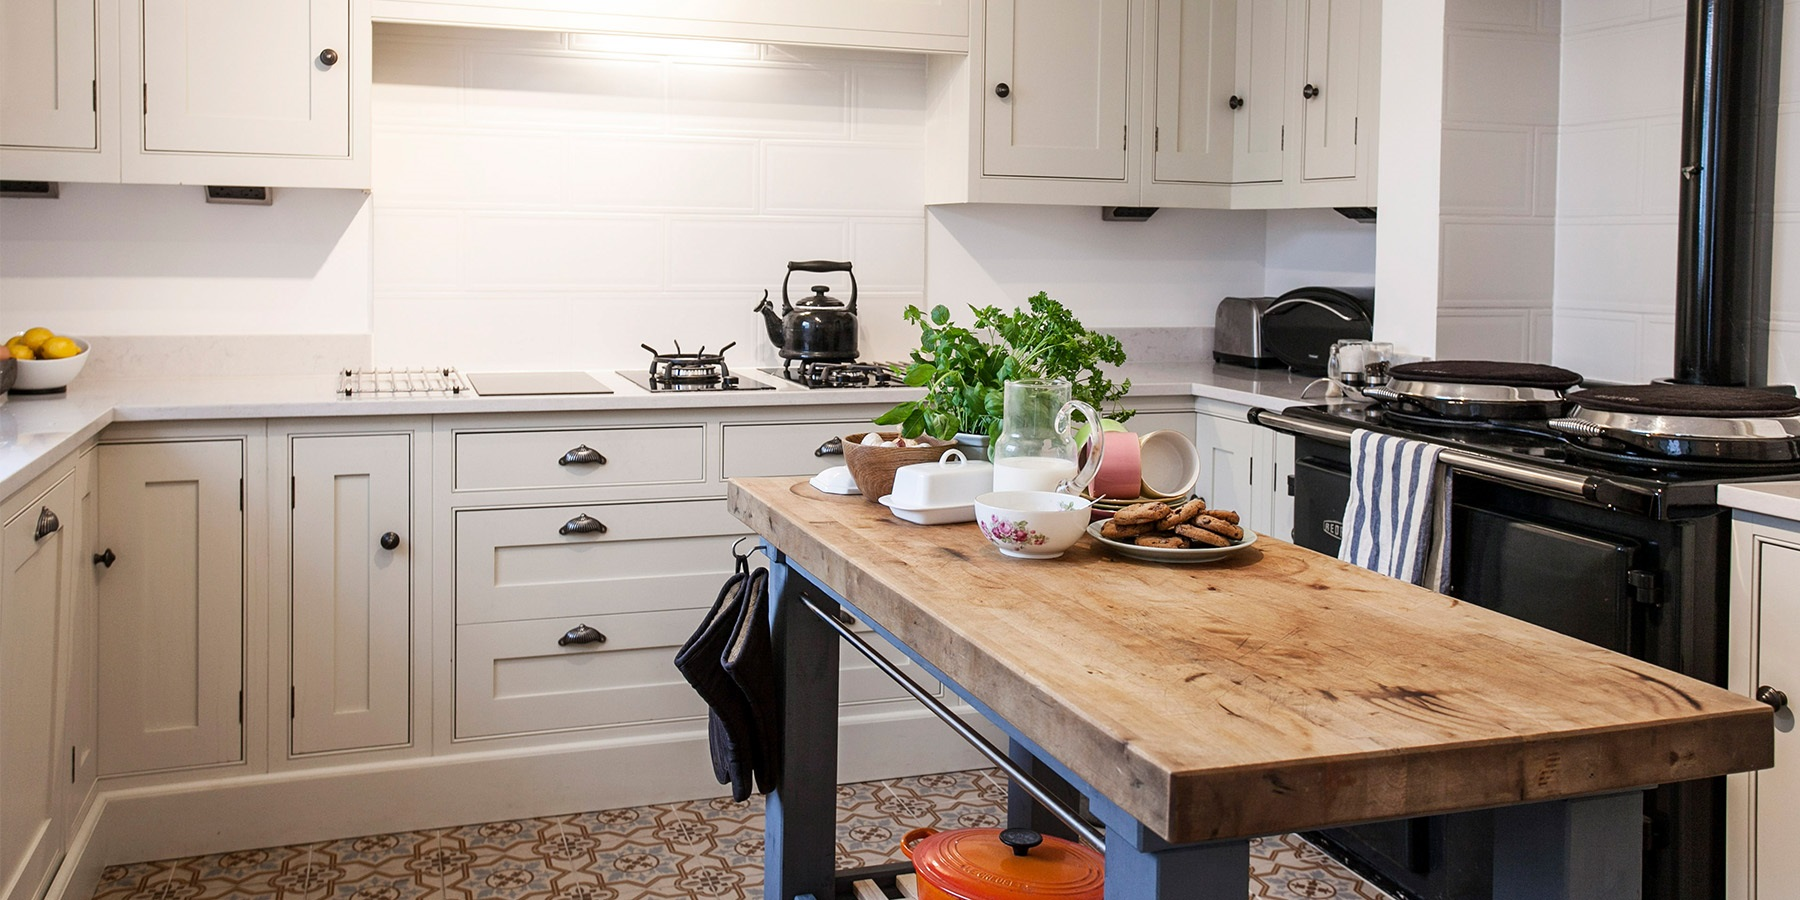 Bespoke White Shaker Kitchen With AGA Total Control - Handmade Wellsdown kitchen cabinetry with beautiful white worktops, and AGA Total Control in Black.